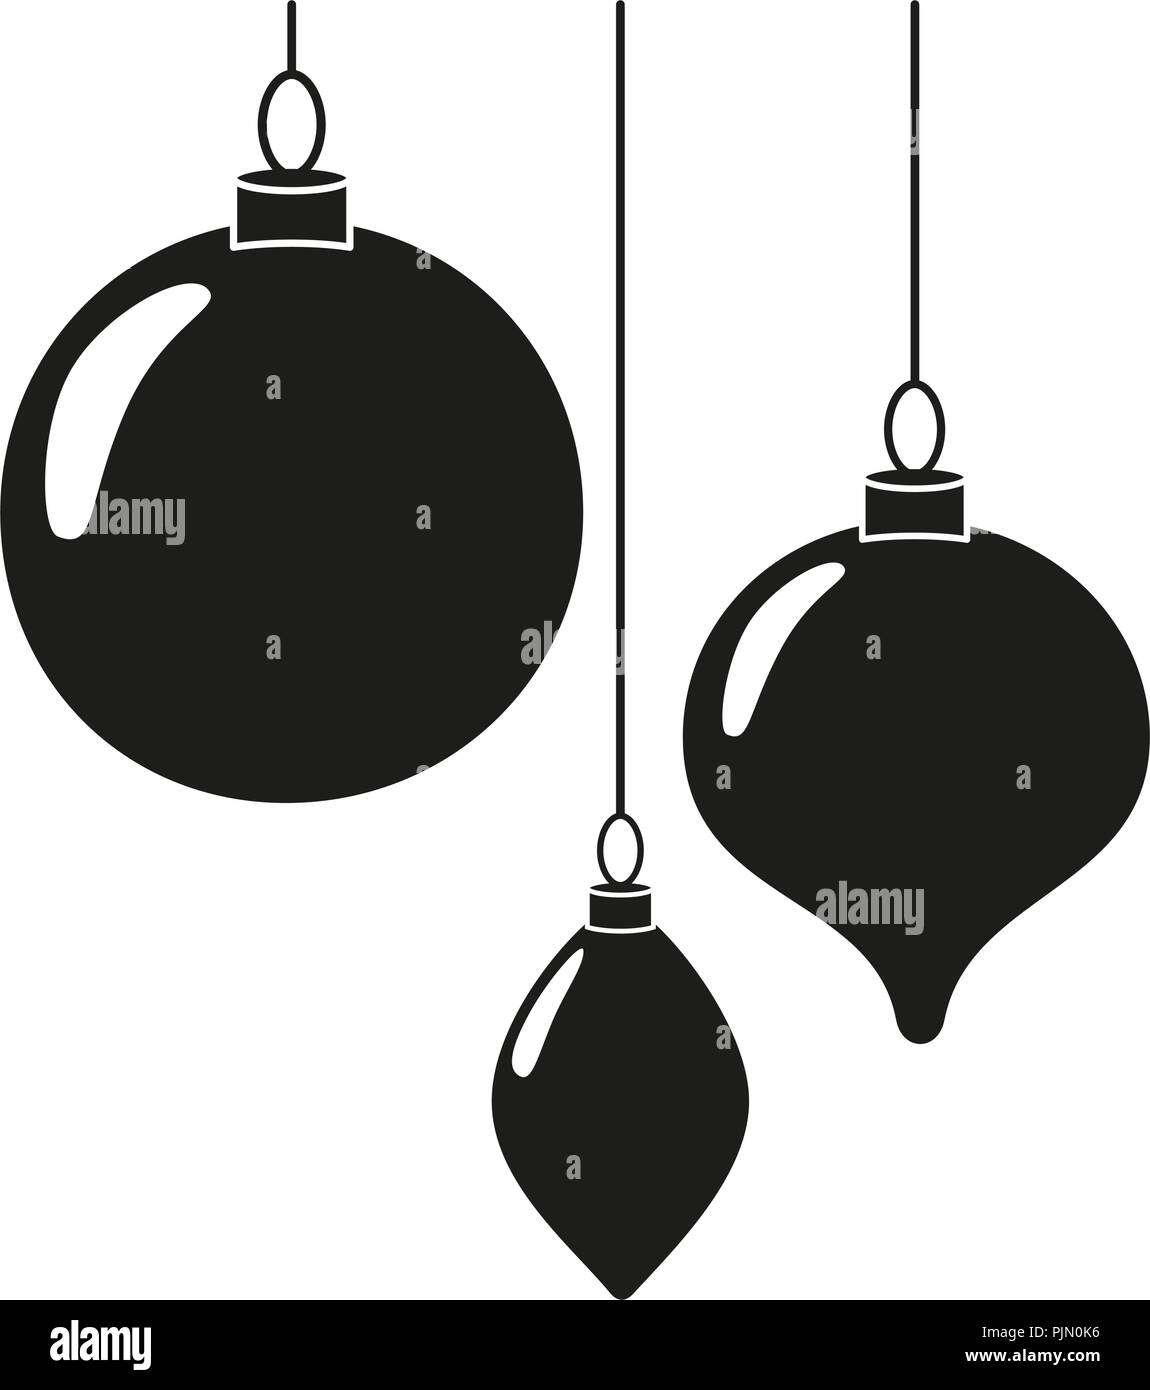 black white christmas tree decorations silhouette